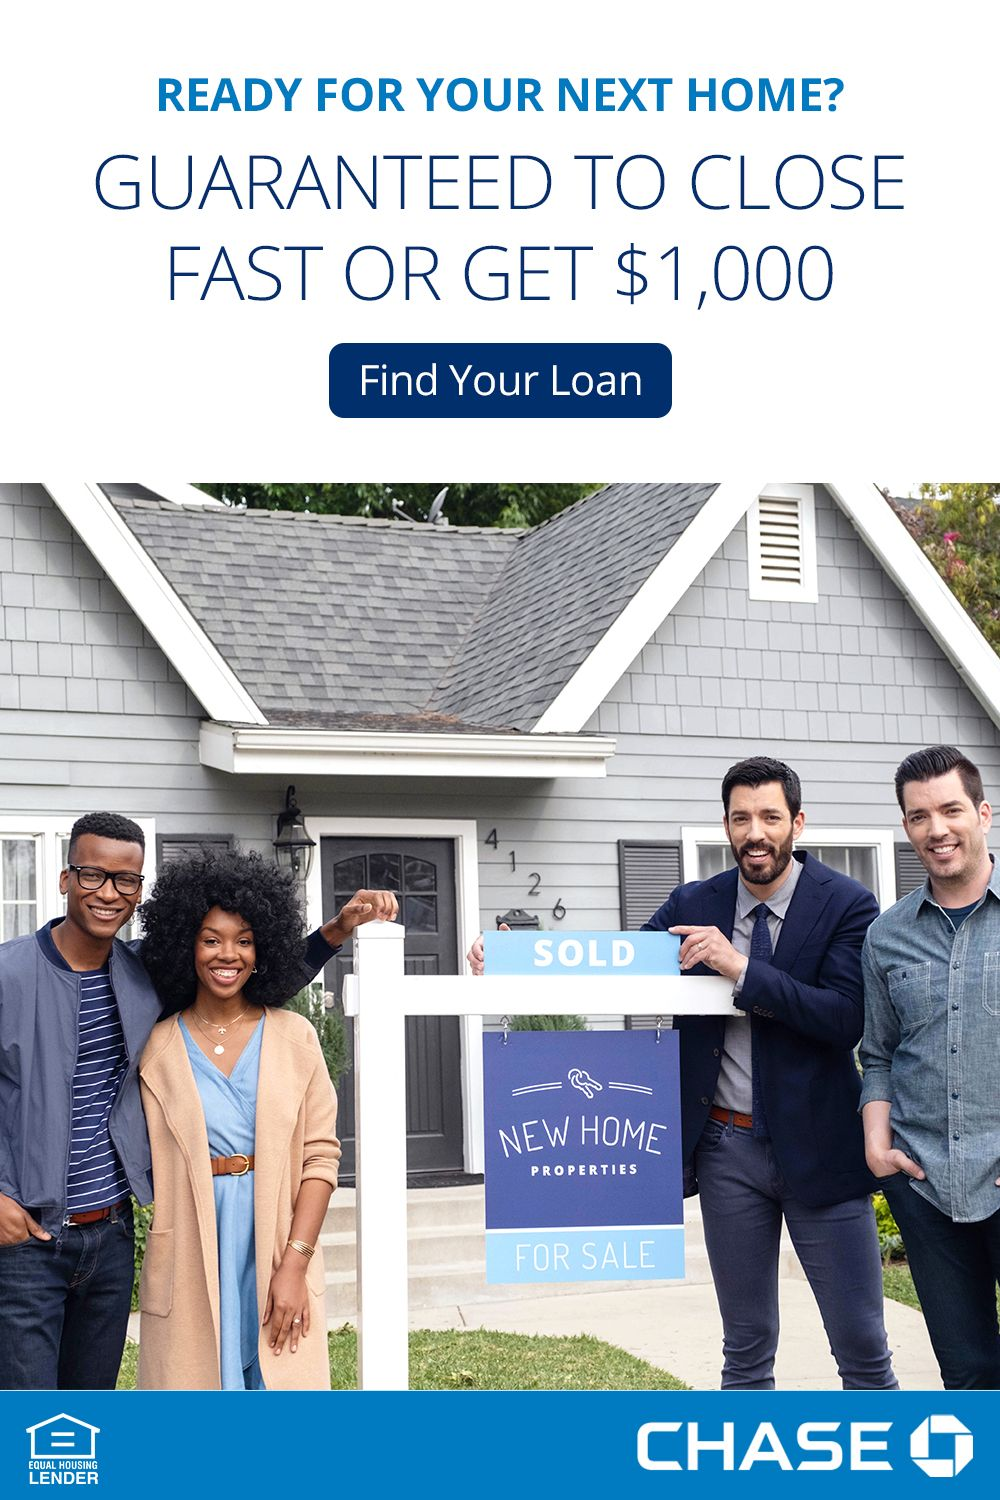 All The Fun Of Owning Your Next Home Even Faster As A Chase Customer You Re Guaranteed To Close Fast Or Get 1 00 Home Equity Next At Home Home Equity Line